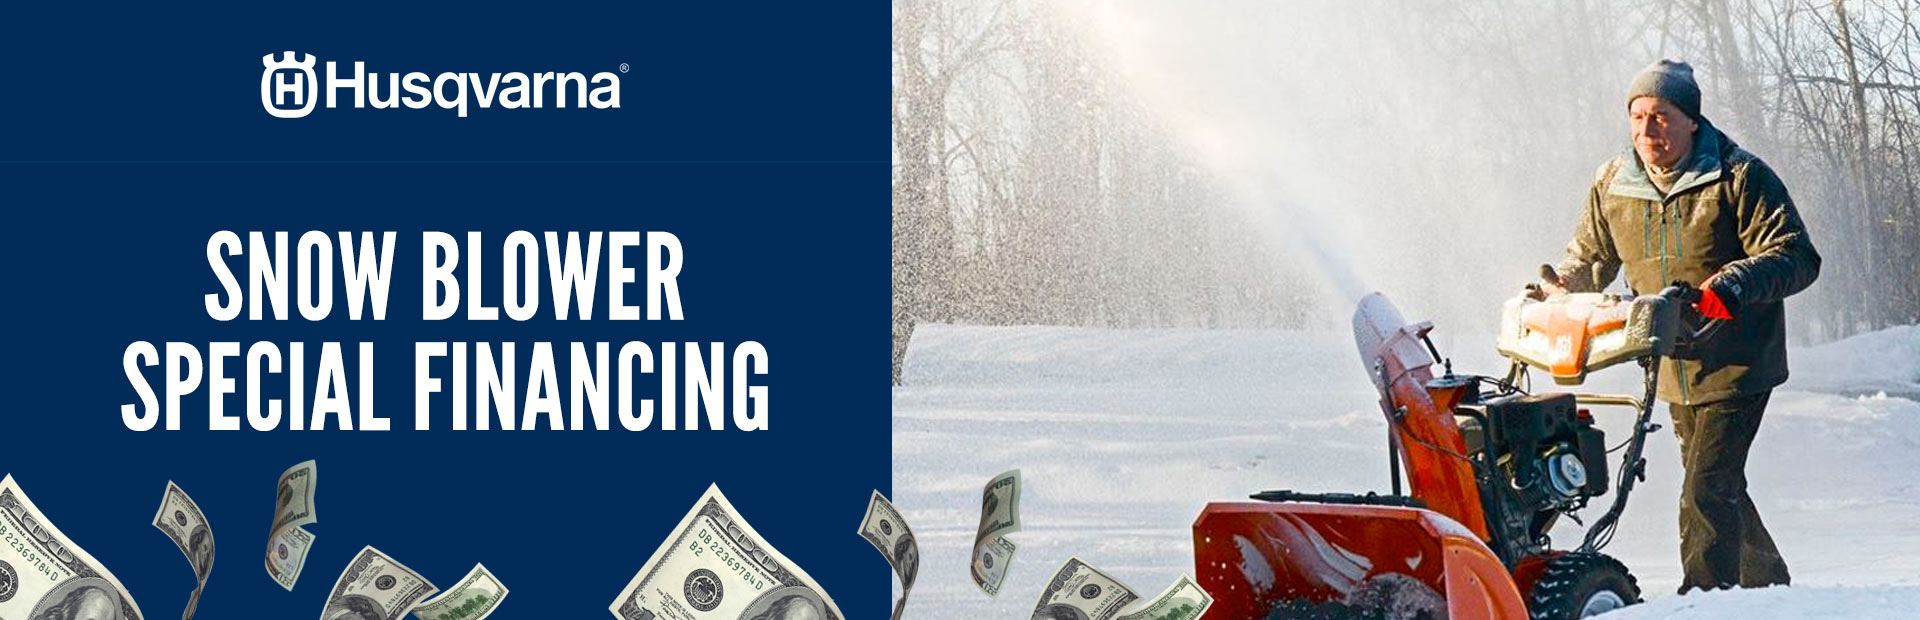 Snow Blower Special Financing